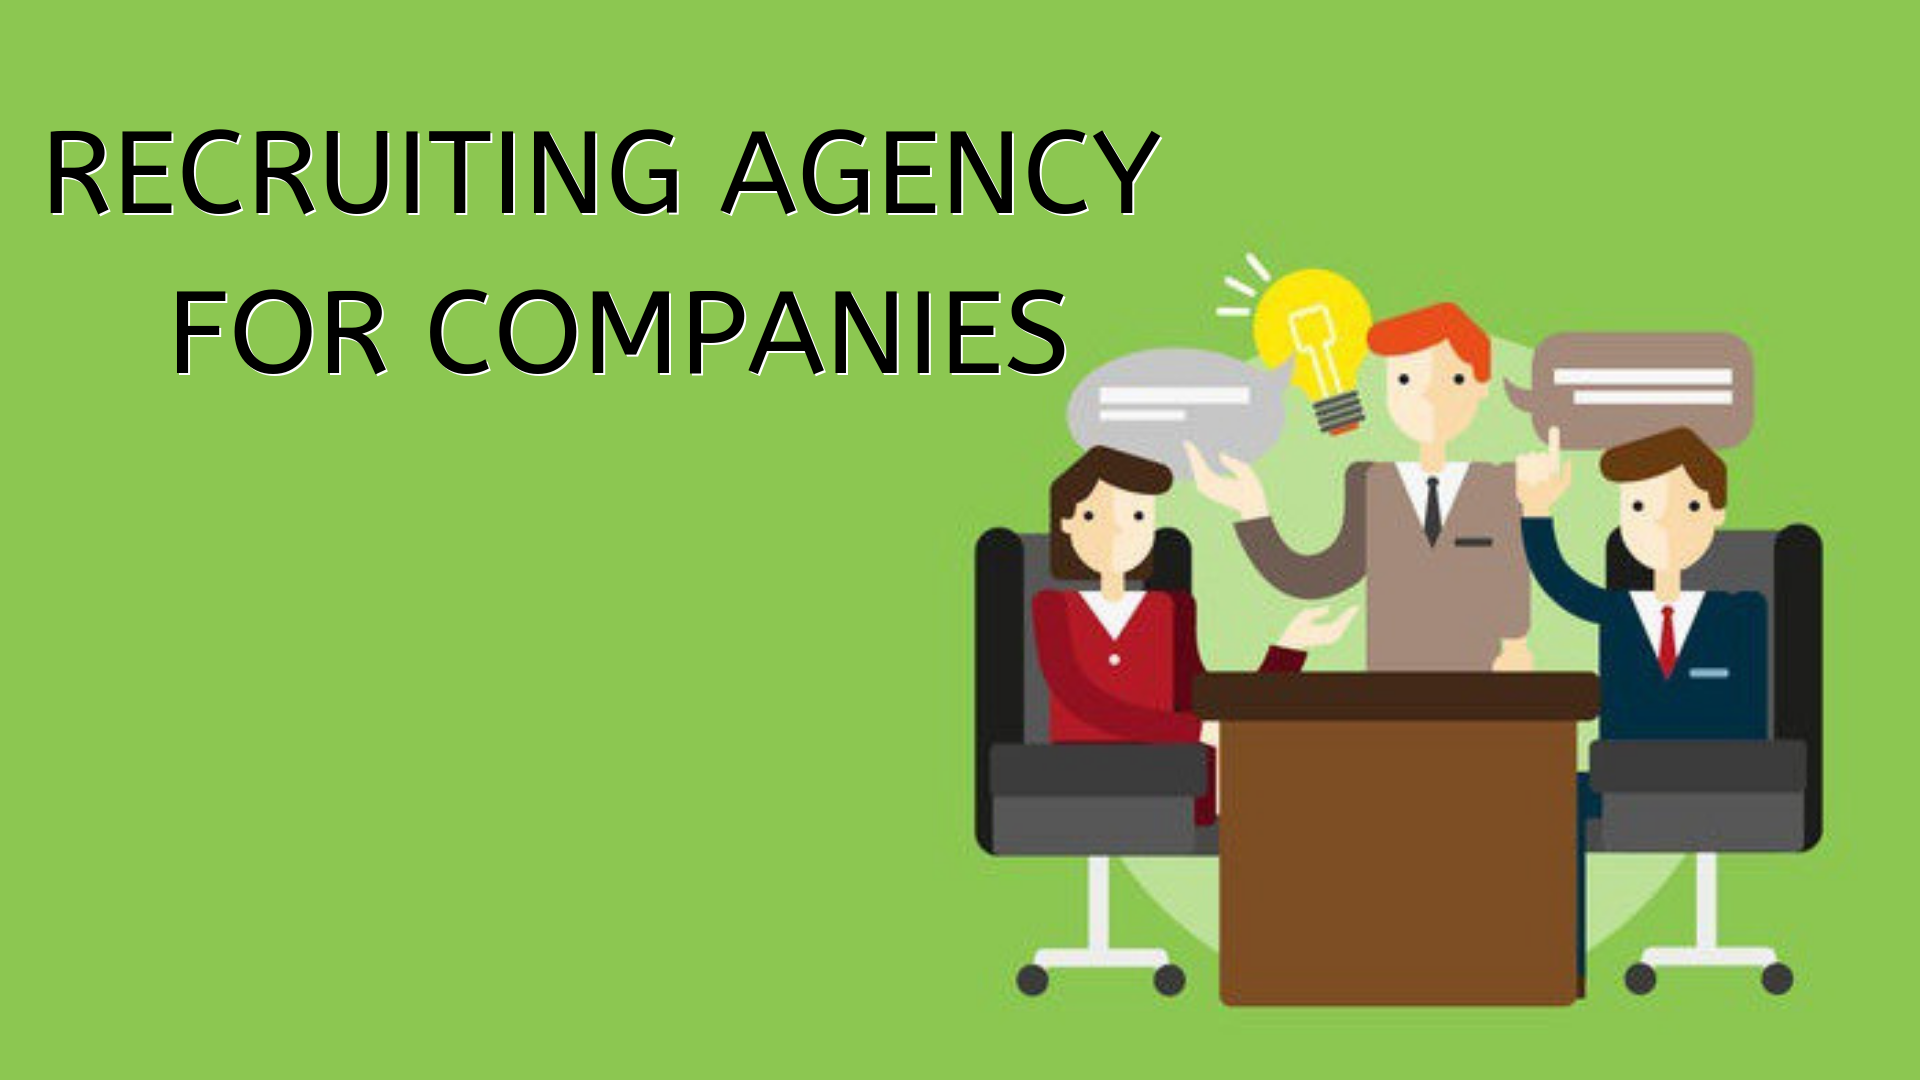 Recruiting agency for companies in India